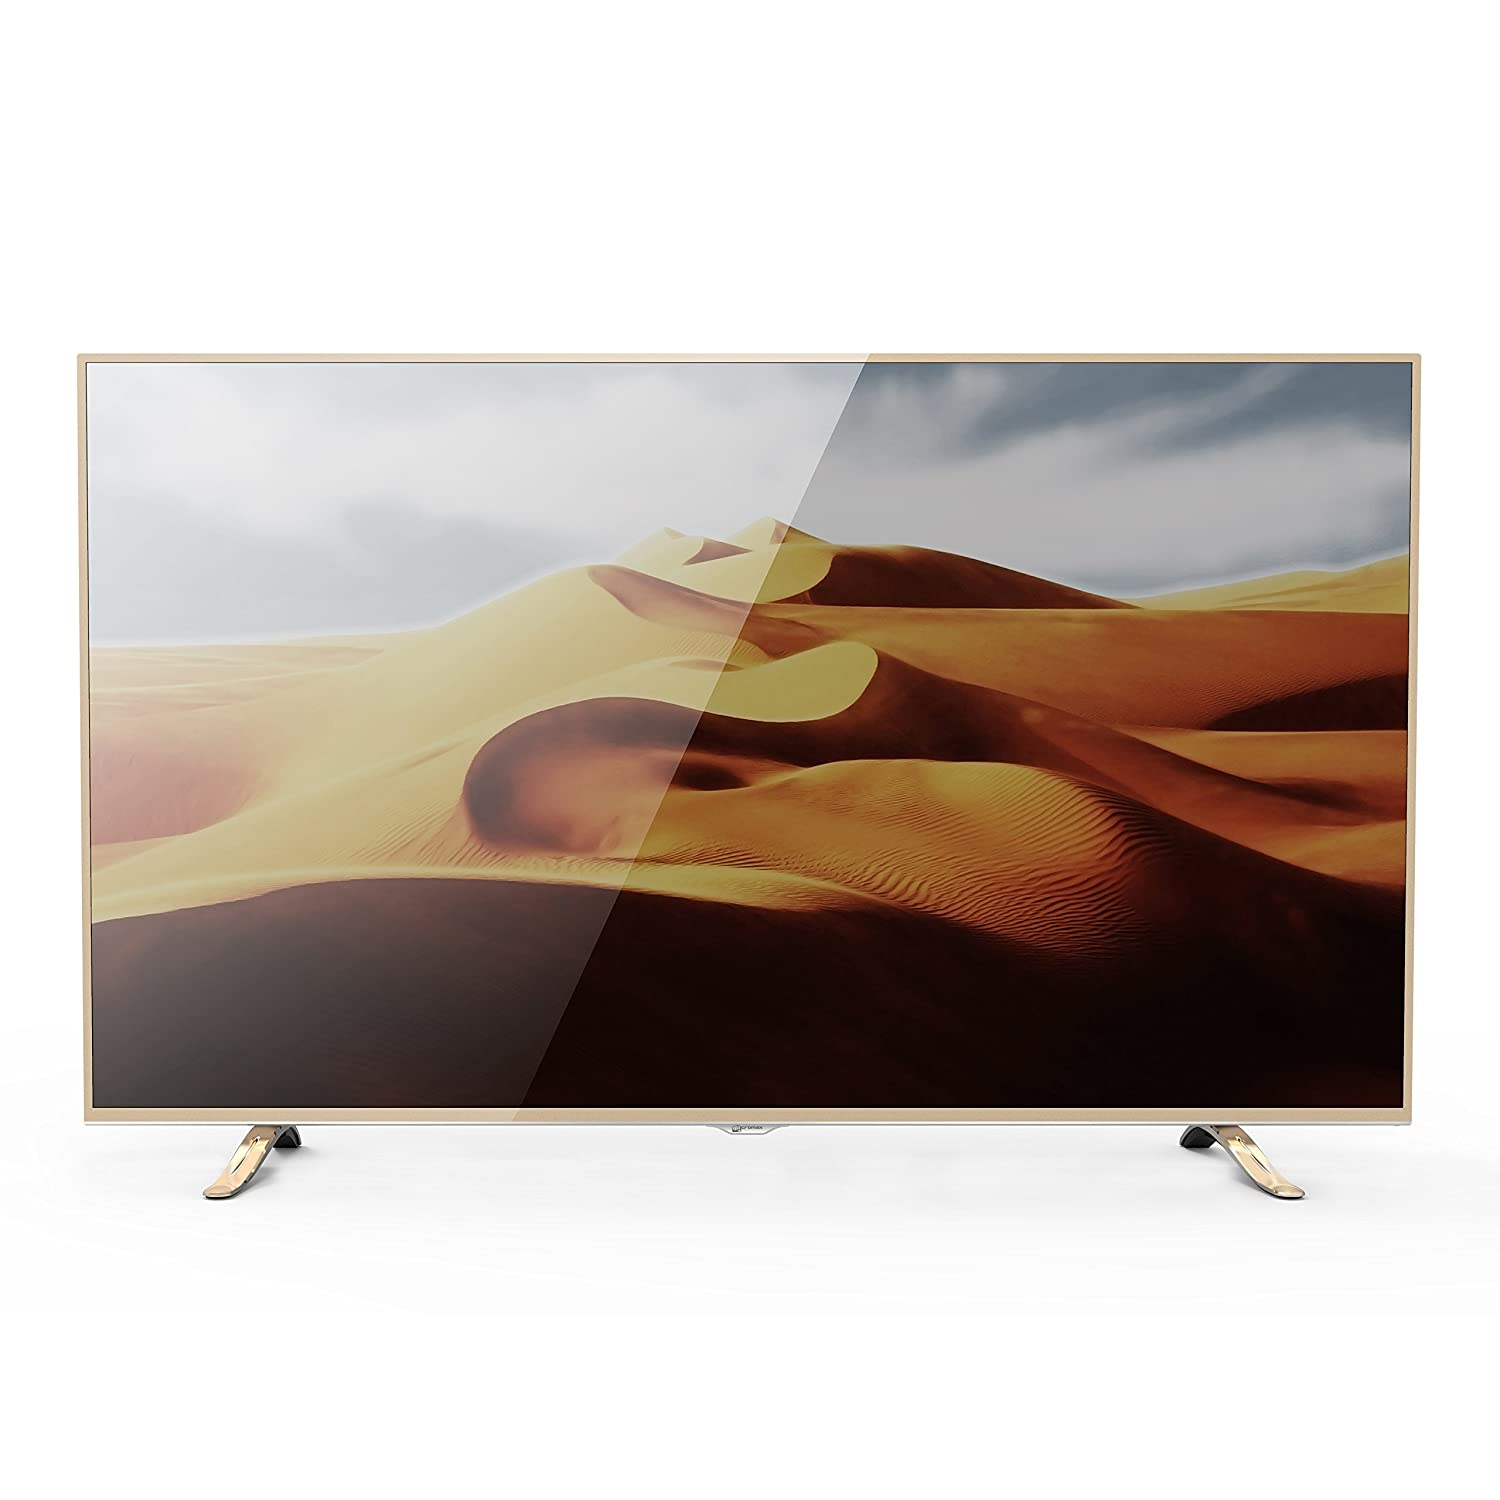 Micromax 50K2330UHD 124 cm (49 inches) Ultra HD LED Smart TV